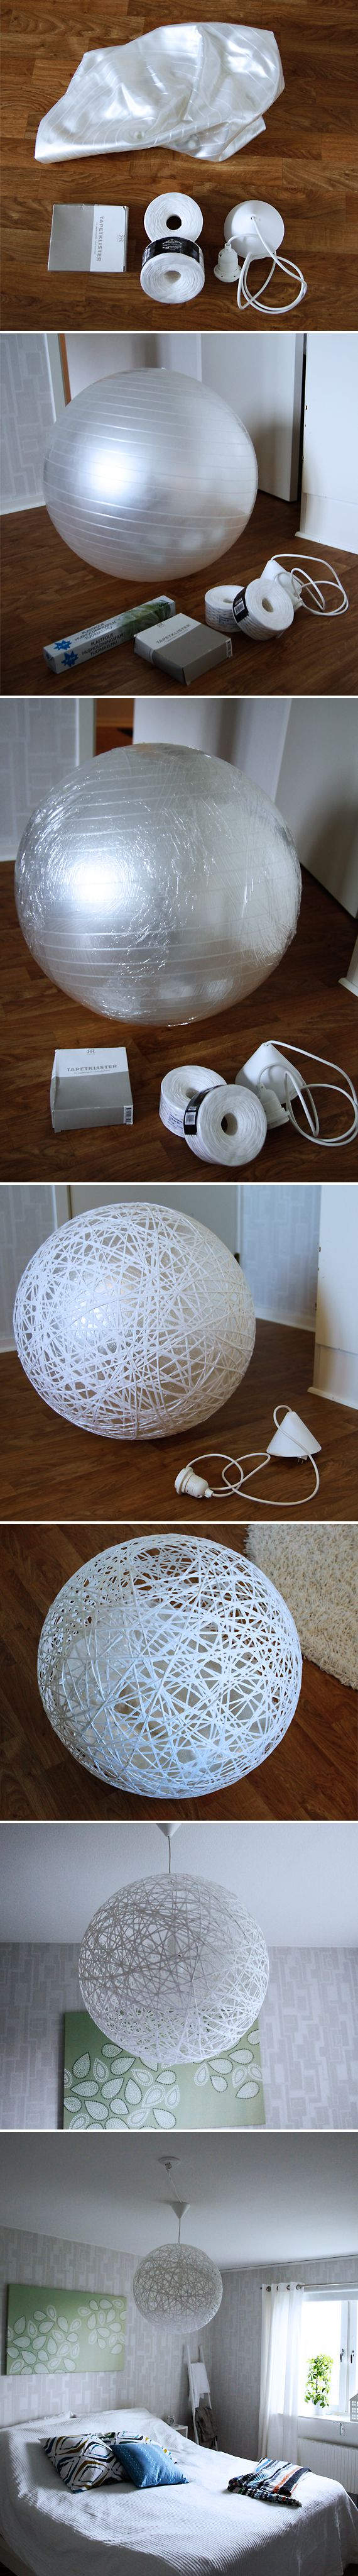 Lamp idea: Exerci Ball, Lights Fixtures, Light Fixtures, Exercise Ball, Diy Lights, Lamps Ideas, String Lamps, Hanging Lamps, Diy String